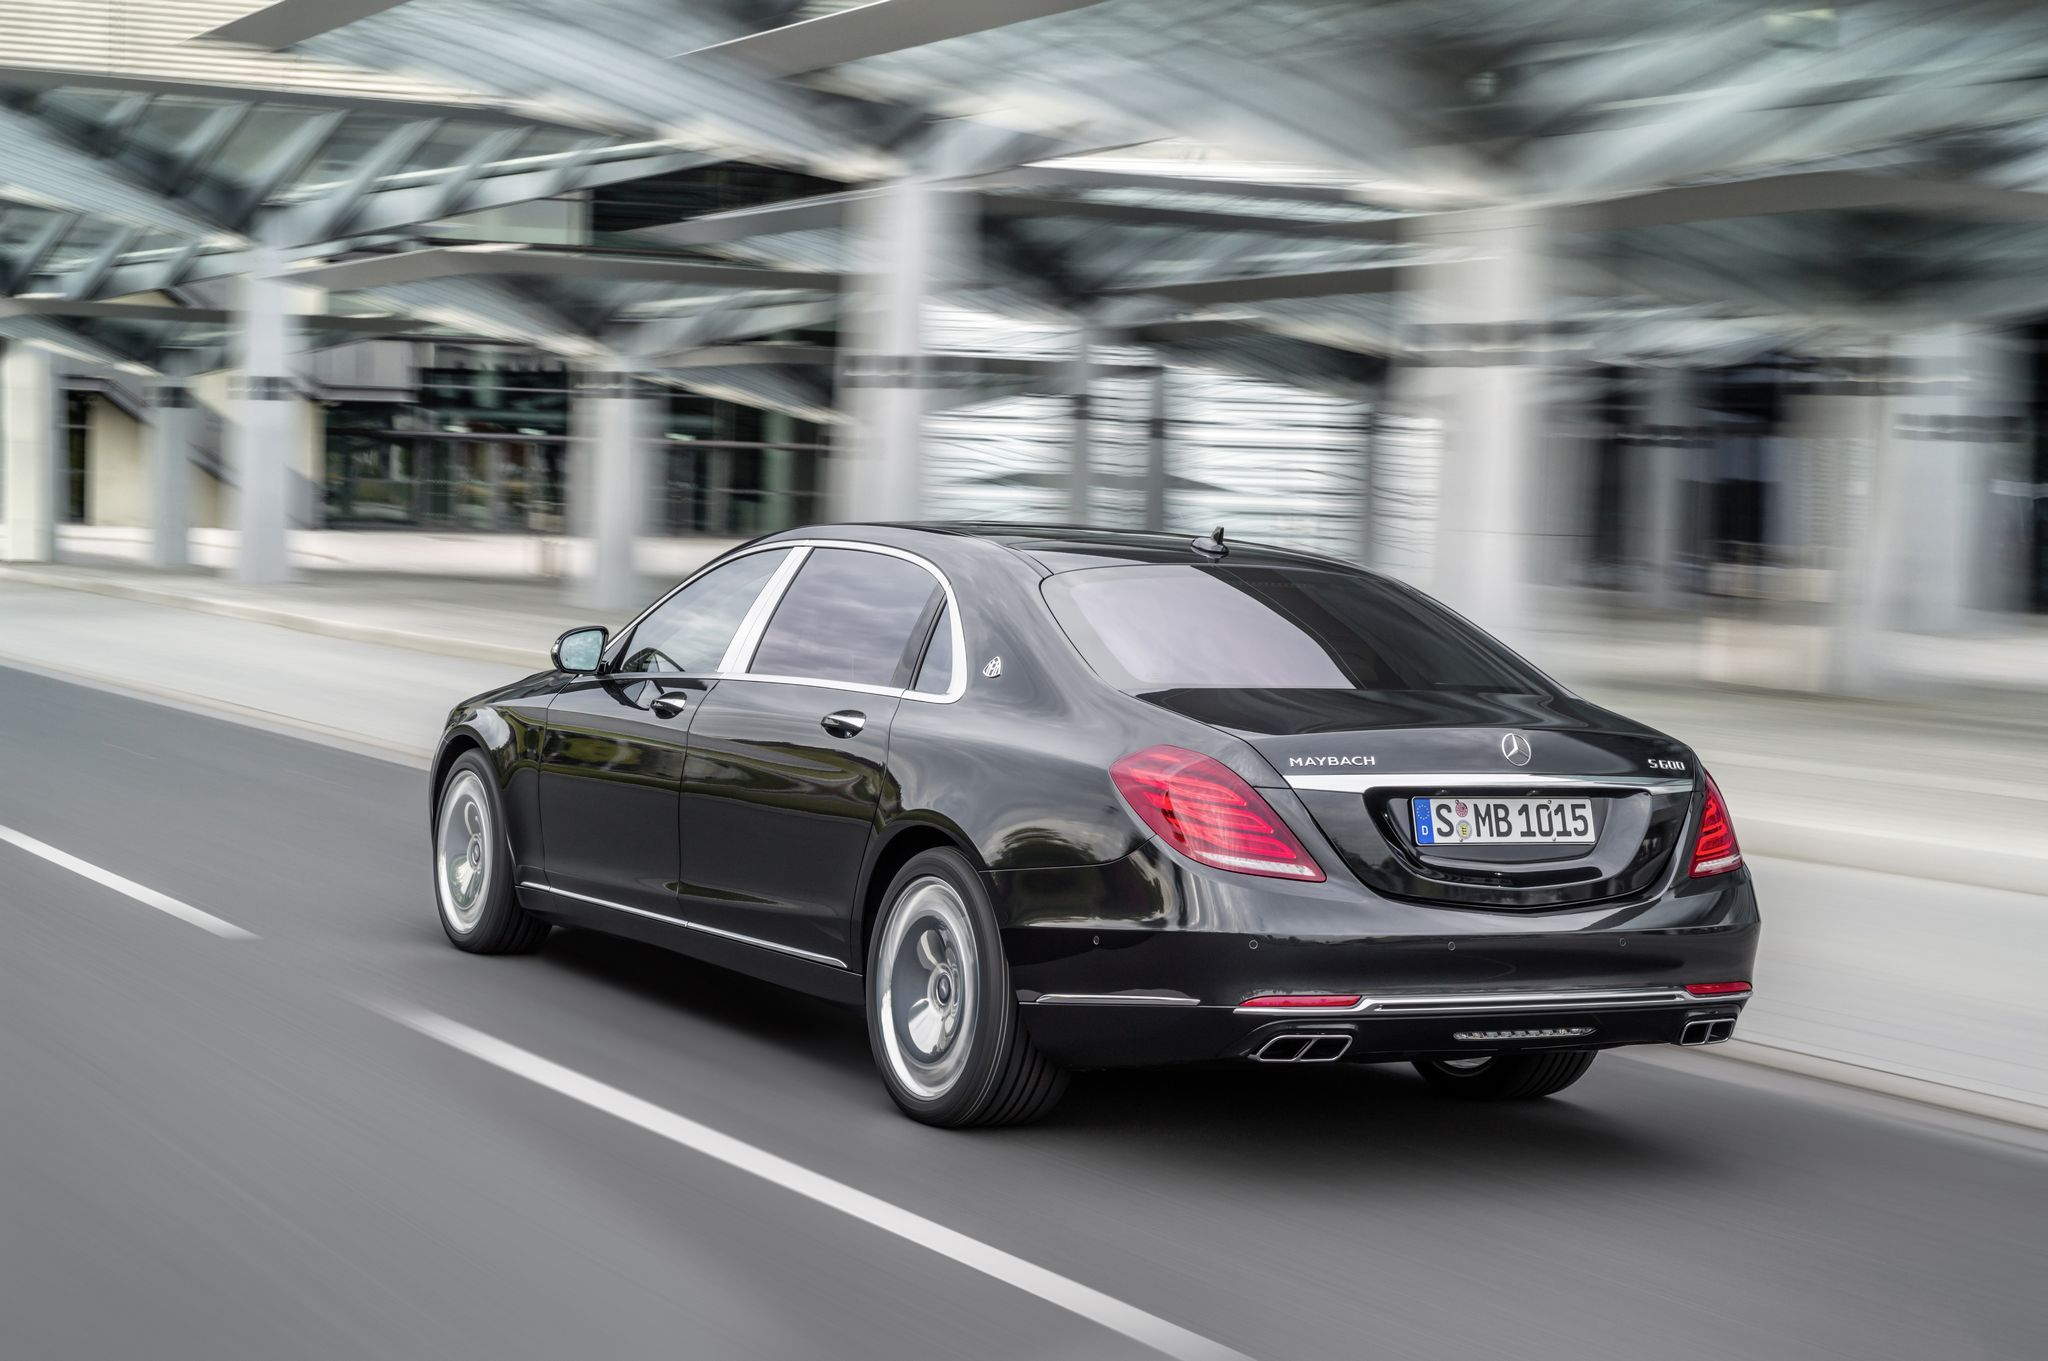 Mercedes and Maybach have finally revealed their all new best in class limousine S600 car ahead of its public debut at the GenevaMotorShow 2015